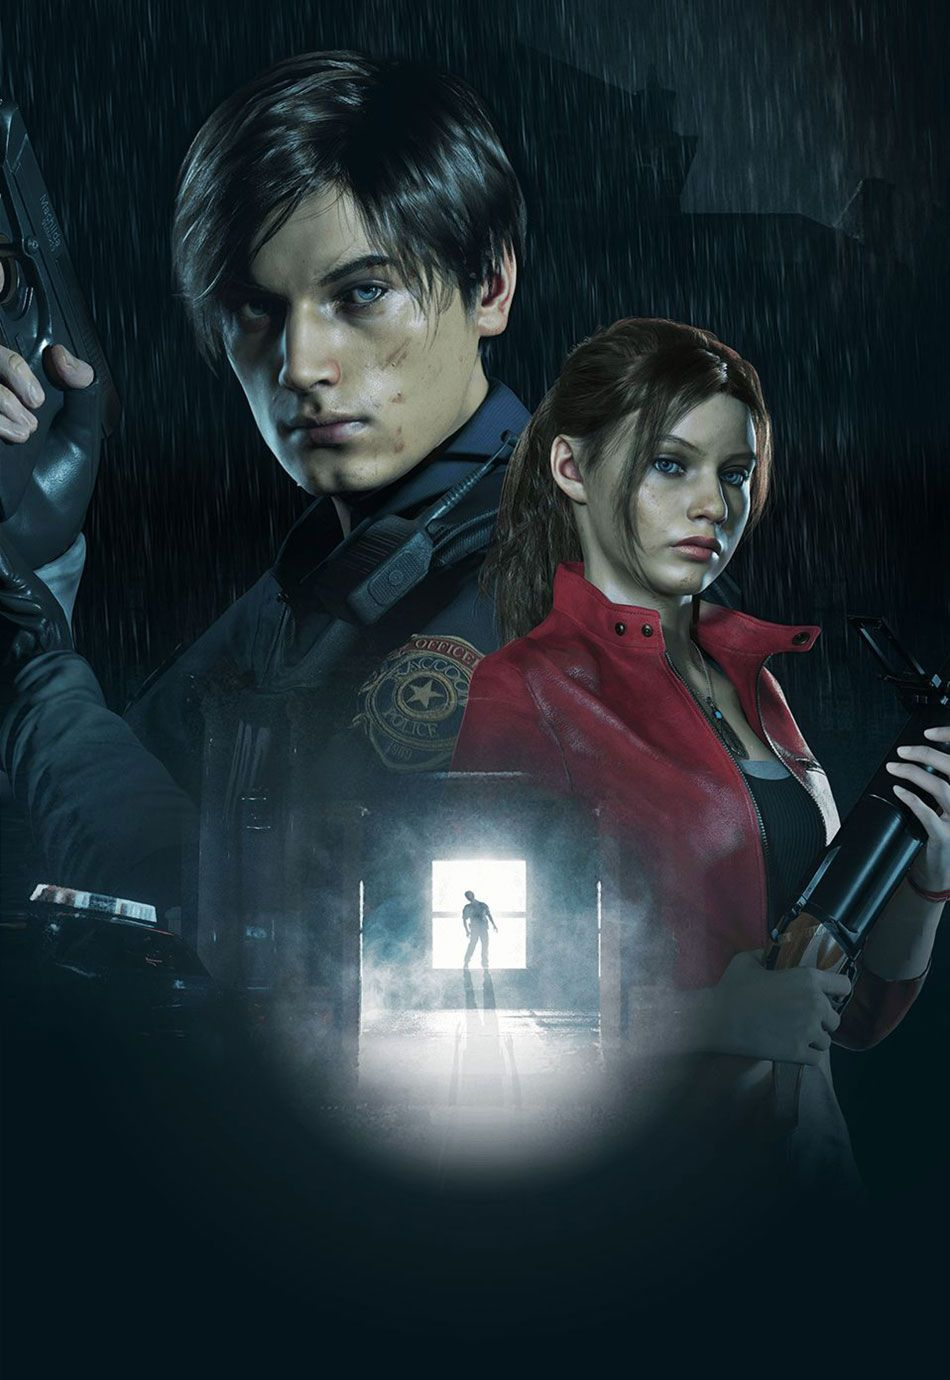 E3 Leon Claire Key Art From Resident Evil 2 2019